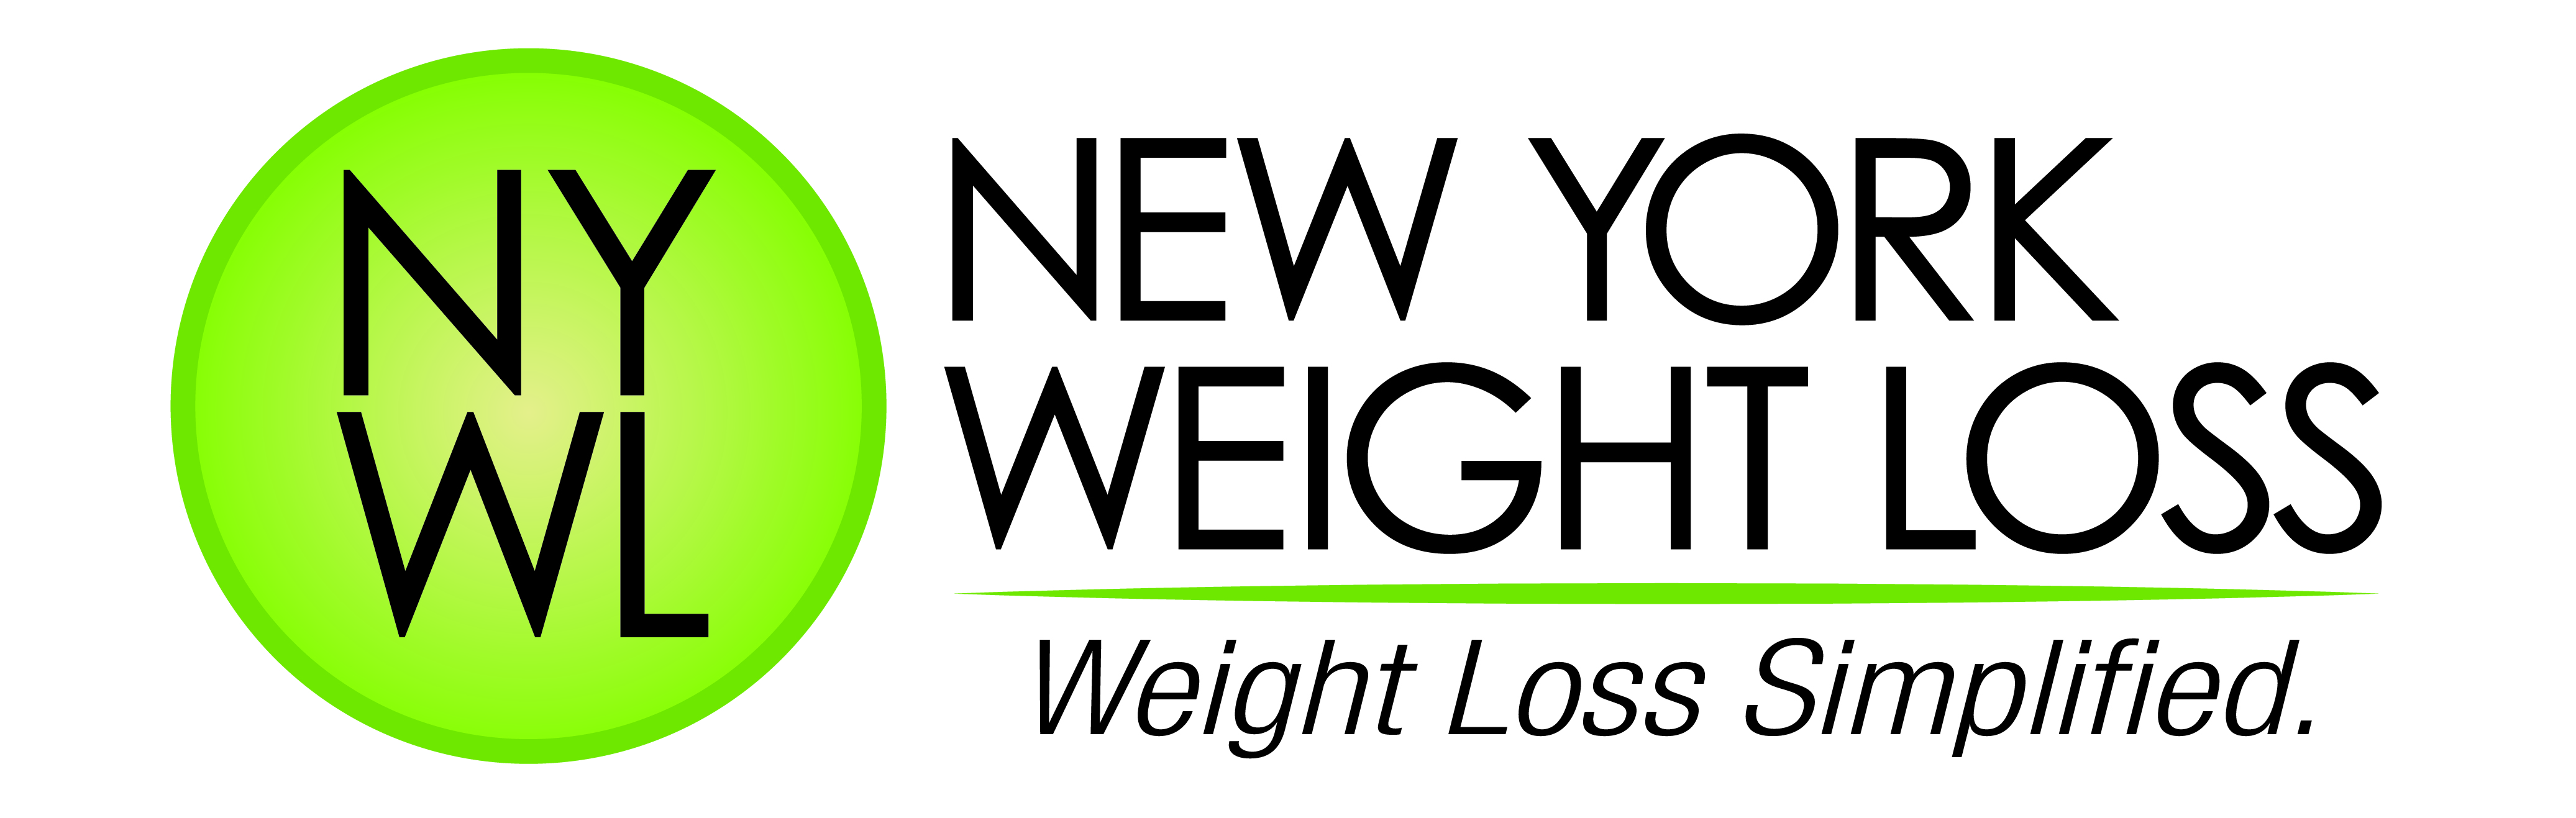 New York Weight Loss reviews | Wellness at 311 W Main St - Victor NY